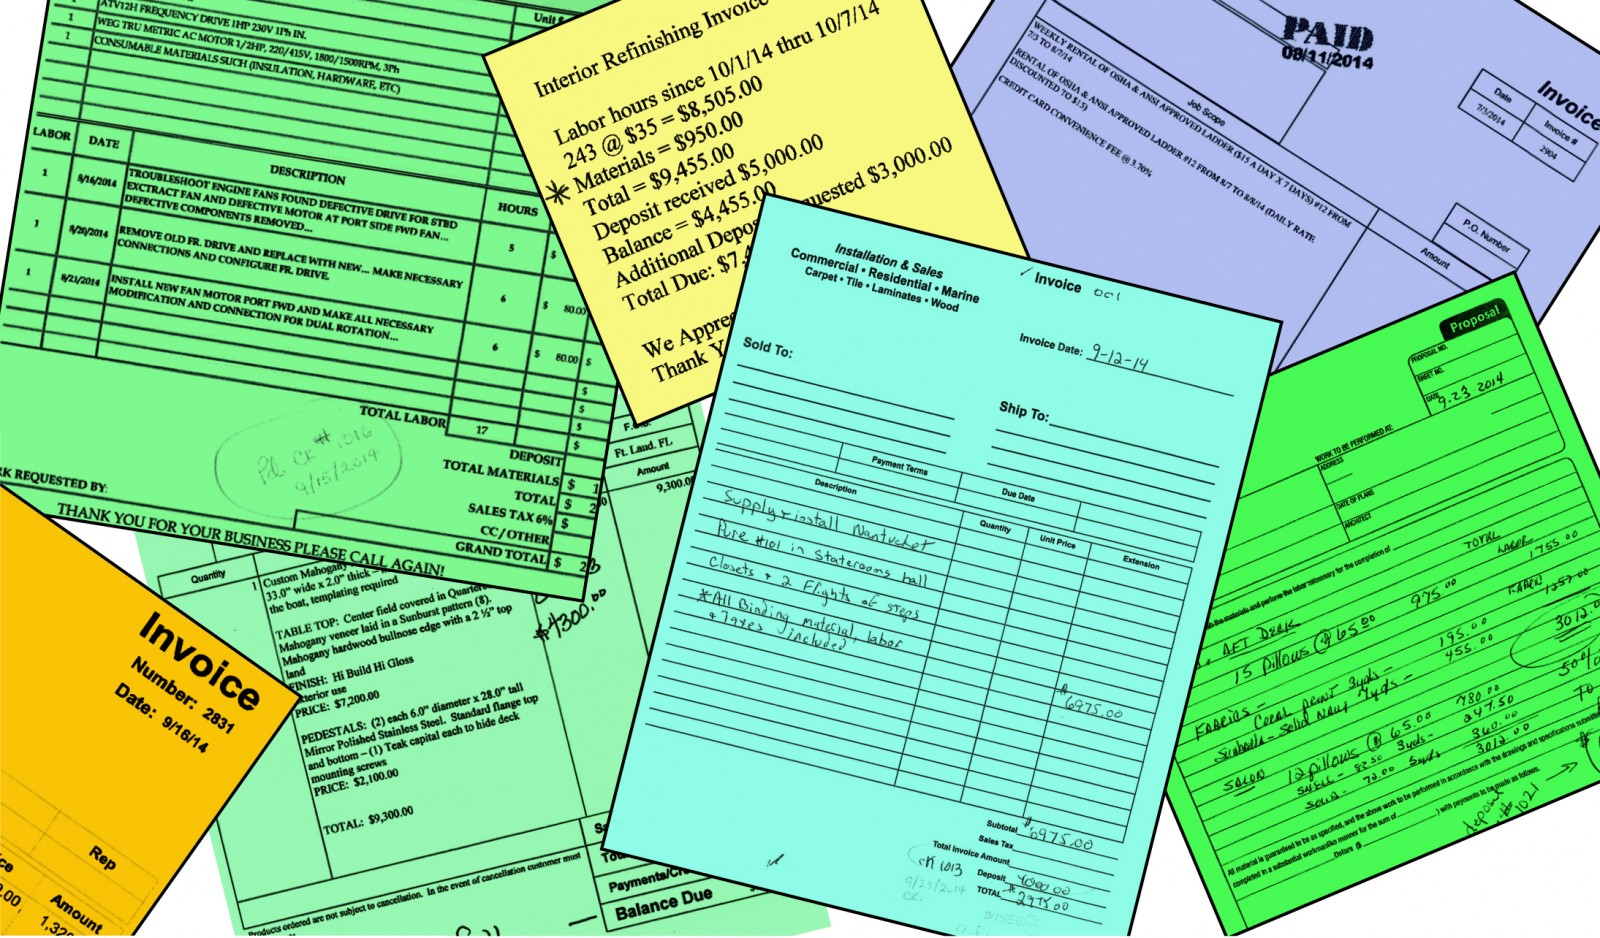 Captains Need Detailed Invoices To Keep Boss Boat Happy The Triton - Different types of invoices